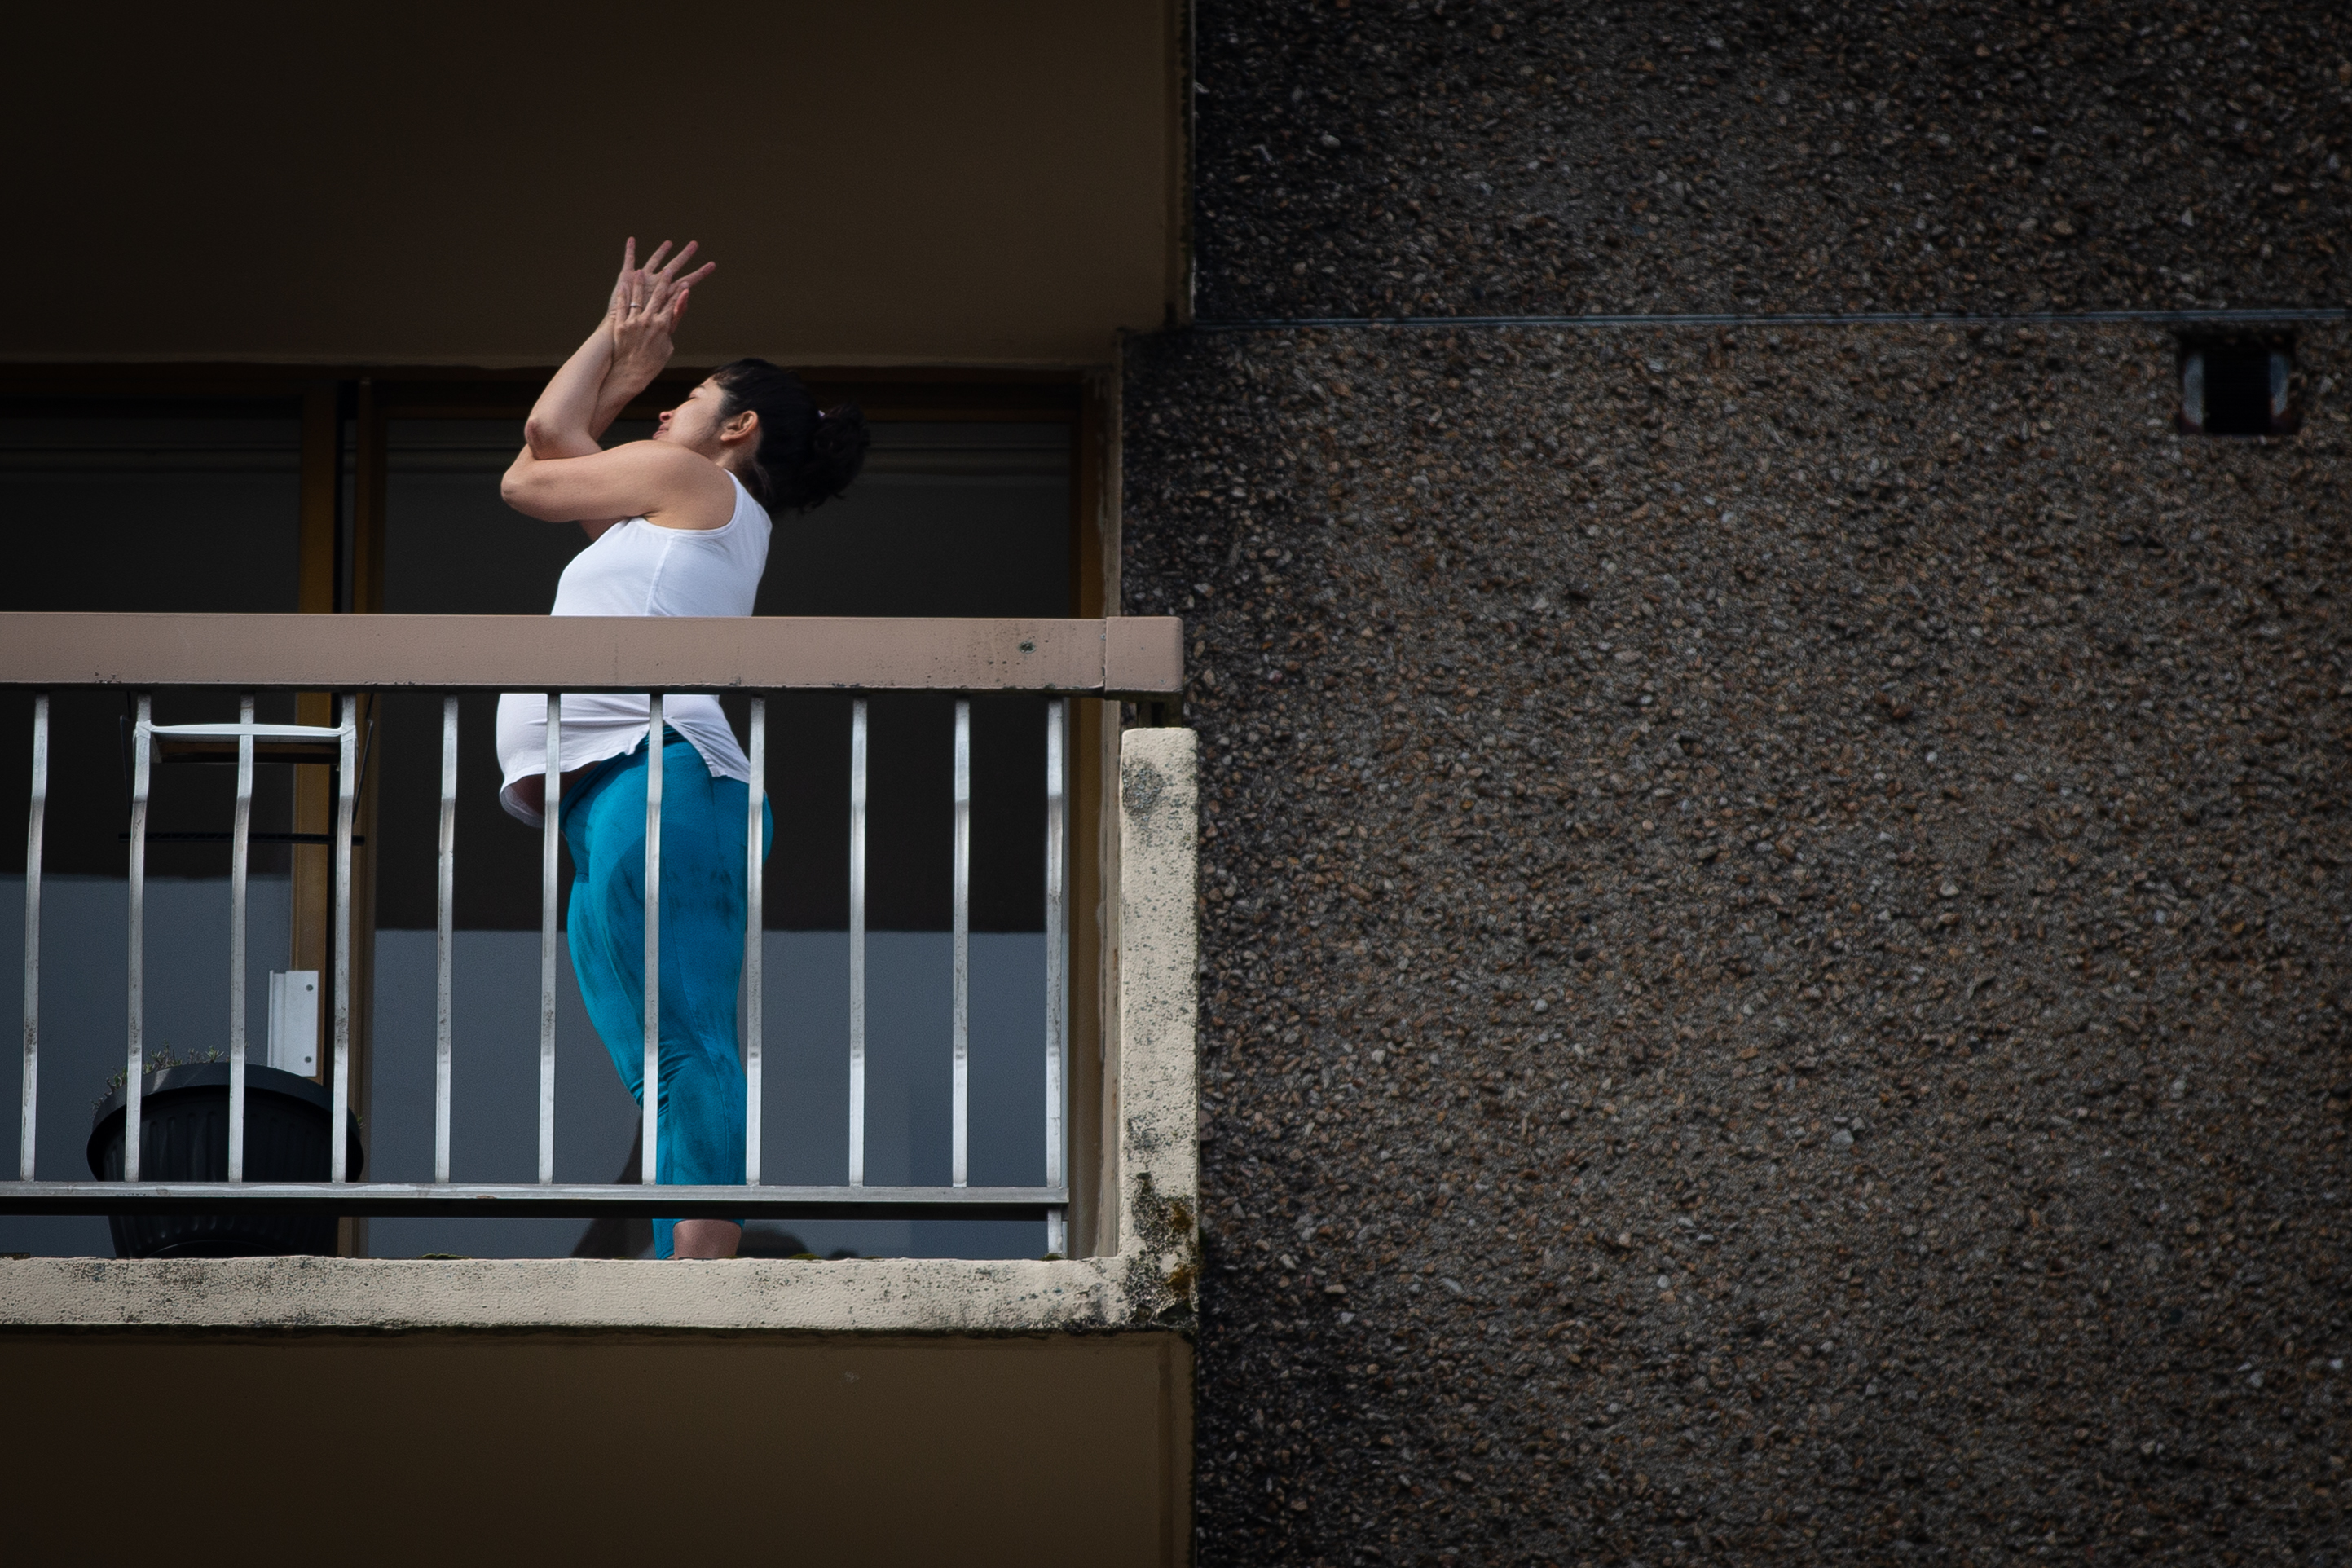 Roberts-Oss practises an arm bind on her balcony.